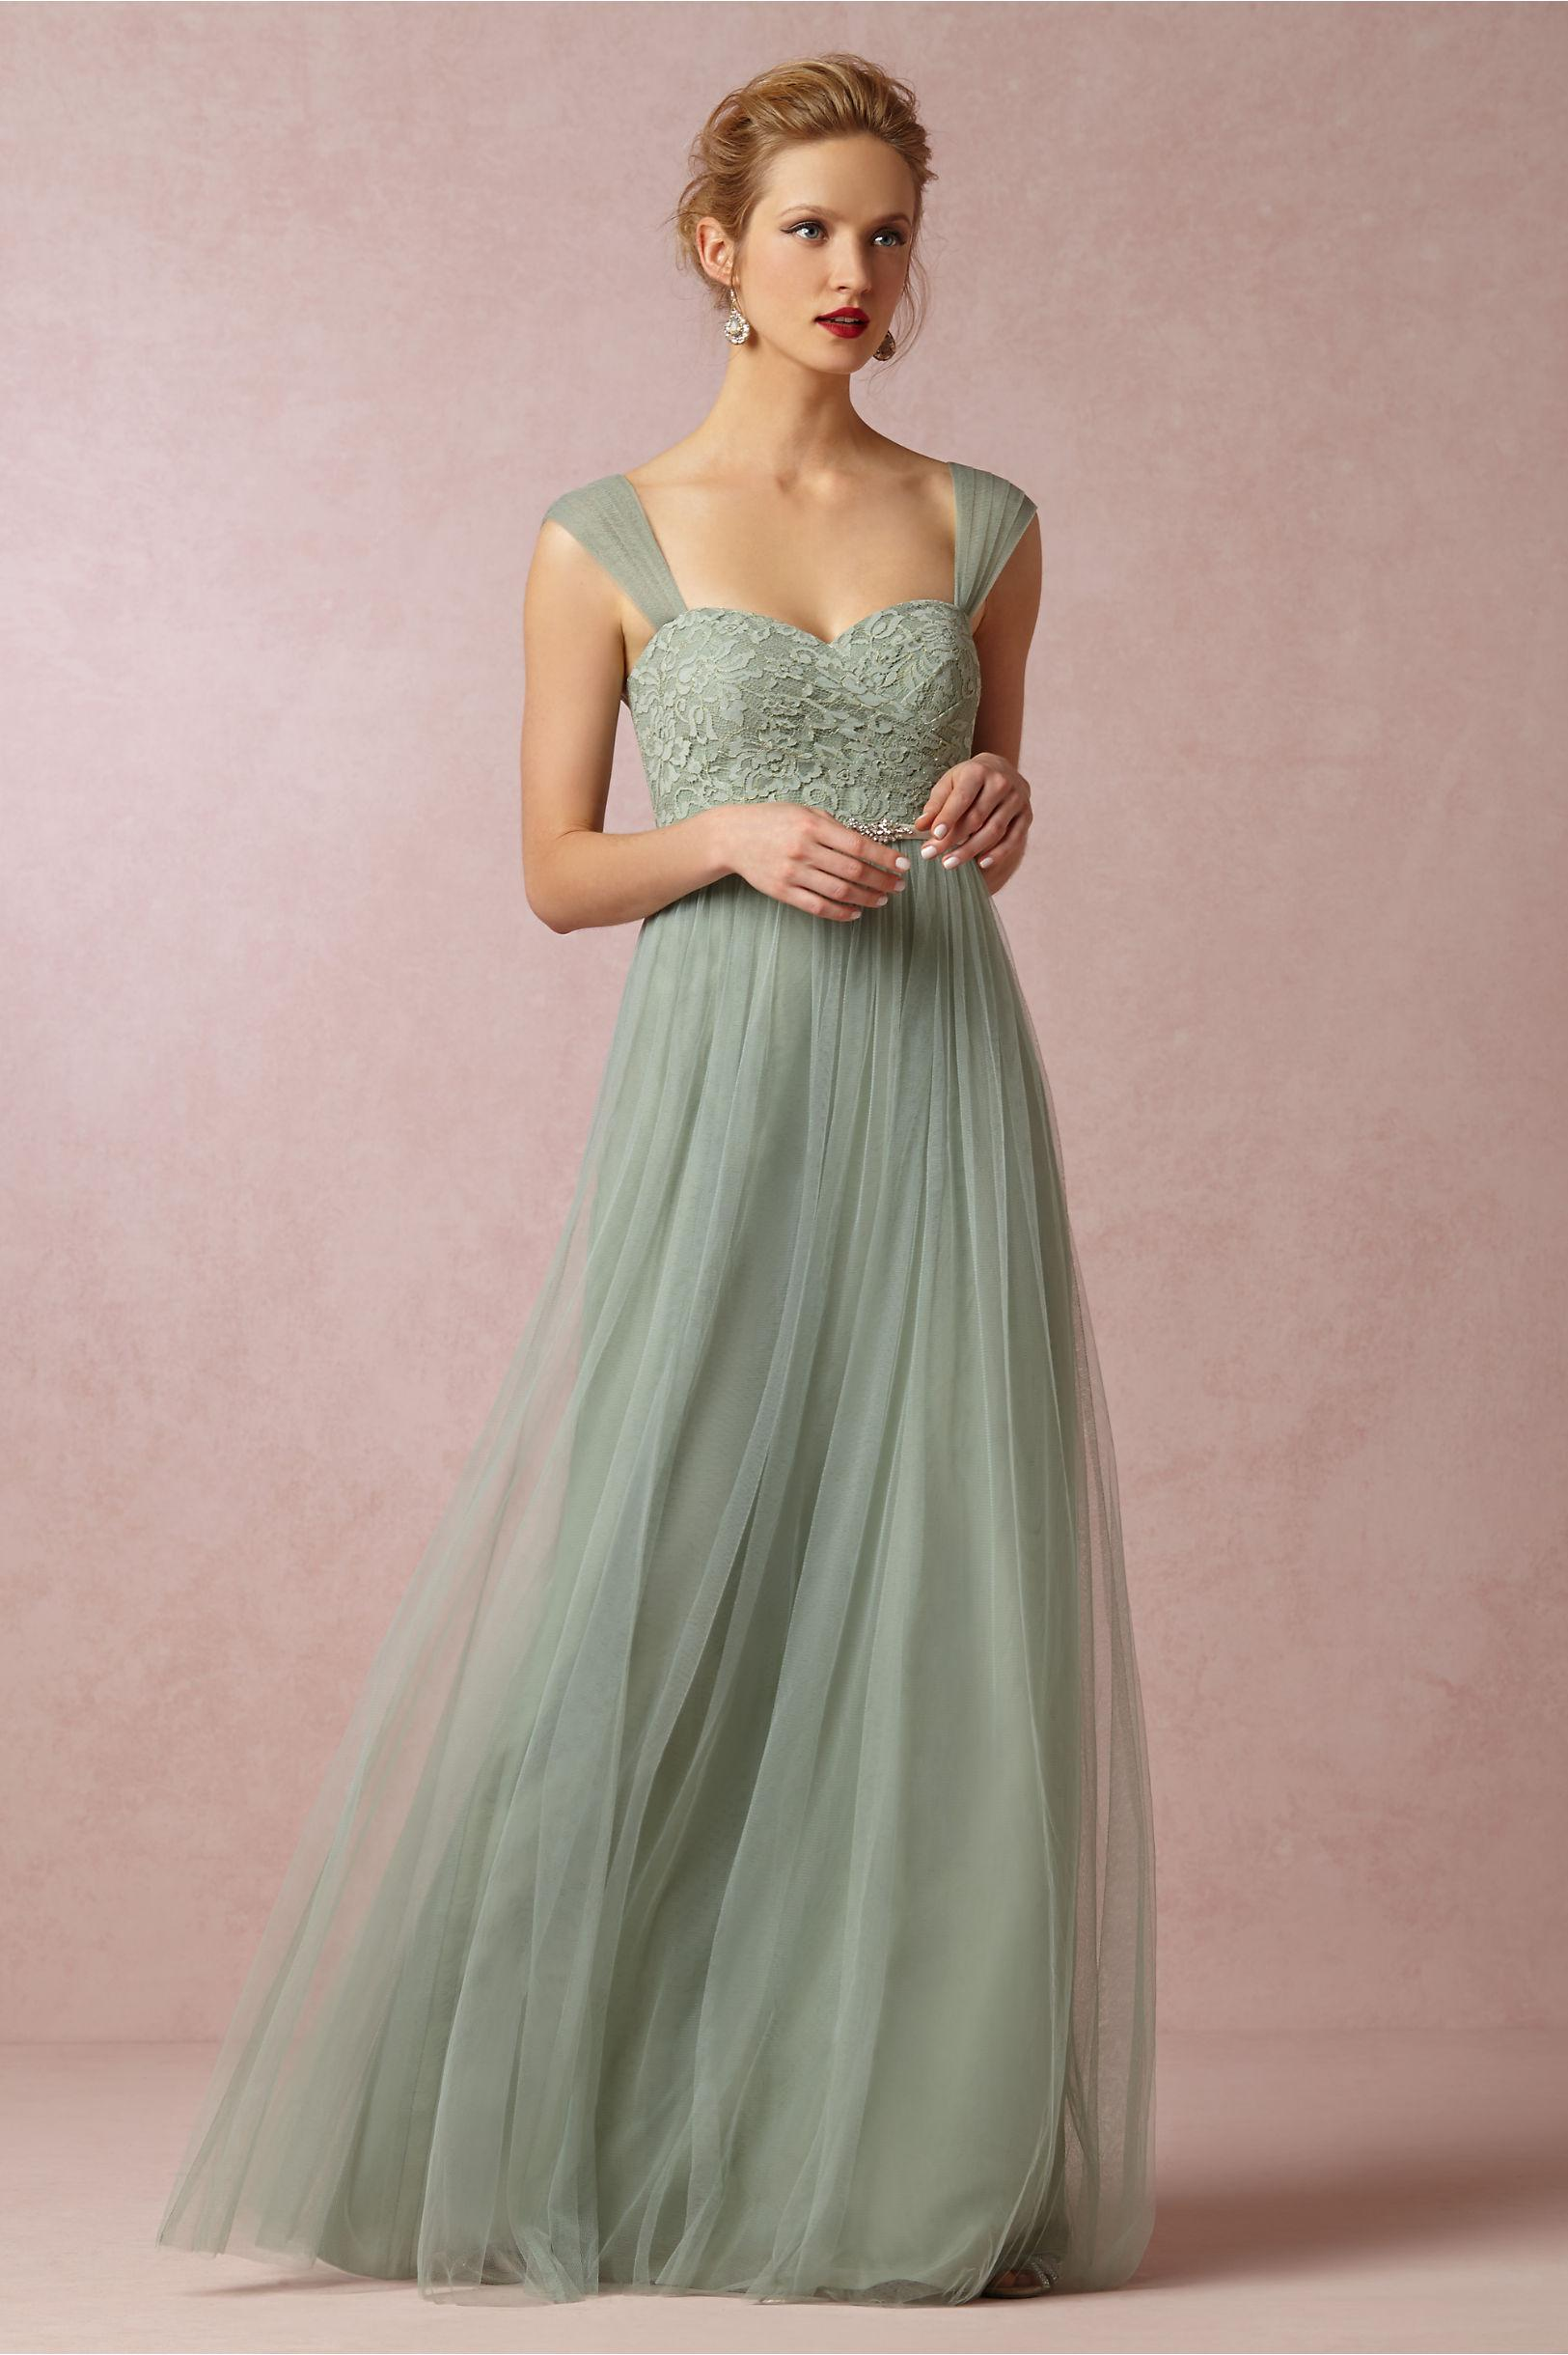 Exclusive design long dresses for bridesmaid lace sweetheart a exclusive design long dresses for bridesmaid lace sweetheart a line tulle brides maid gowns capped sleeves modest wedding guest dress bridesmaid dresses ombrellifo Gallery